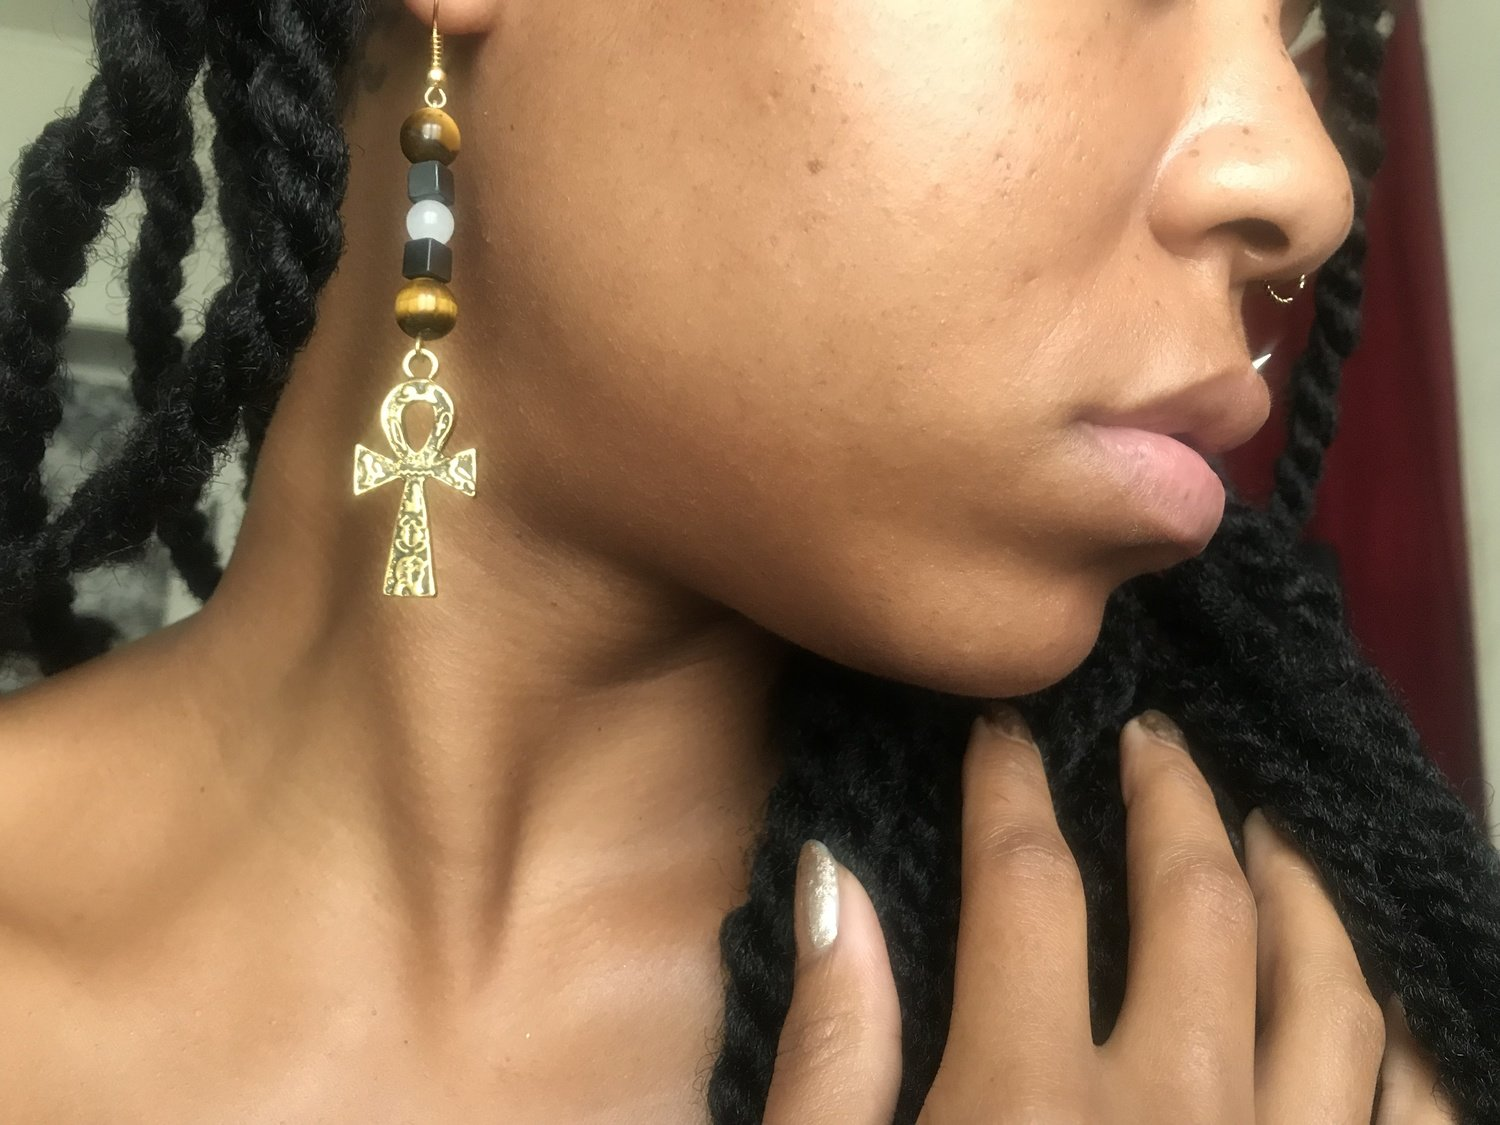 Kemetic Krystal Earrings